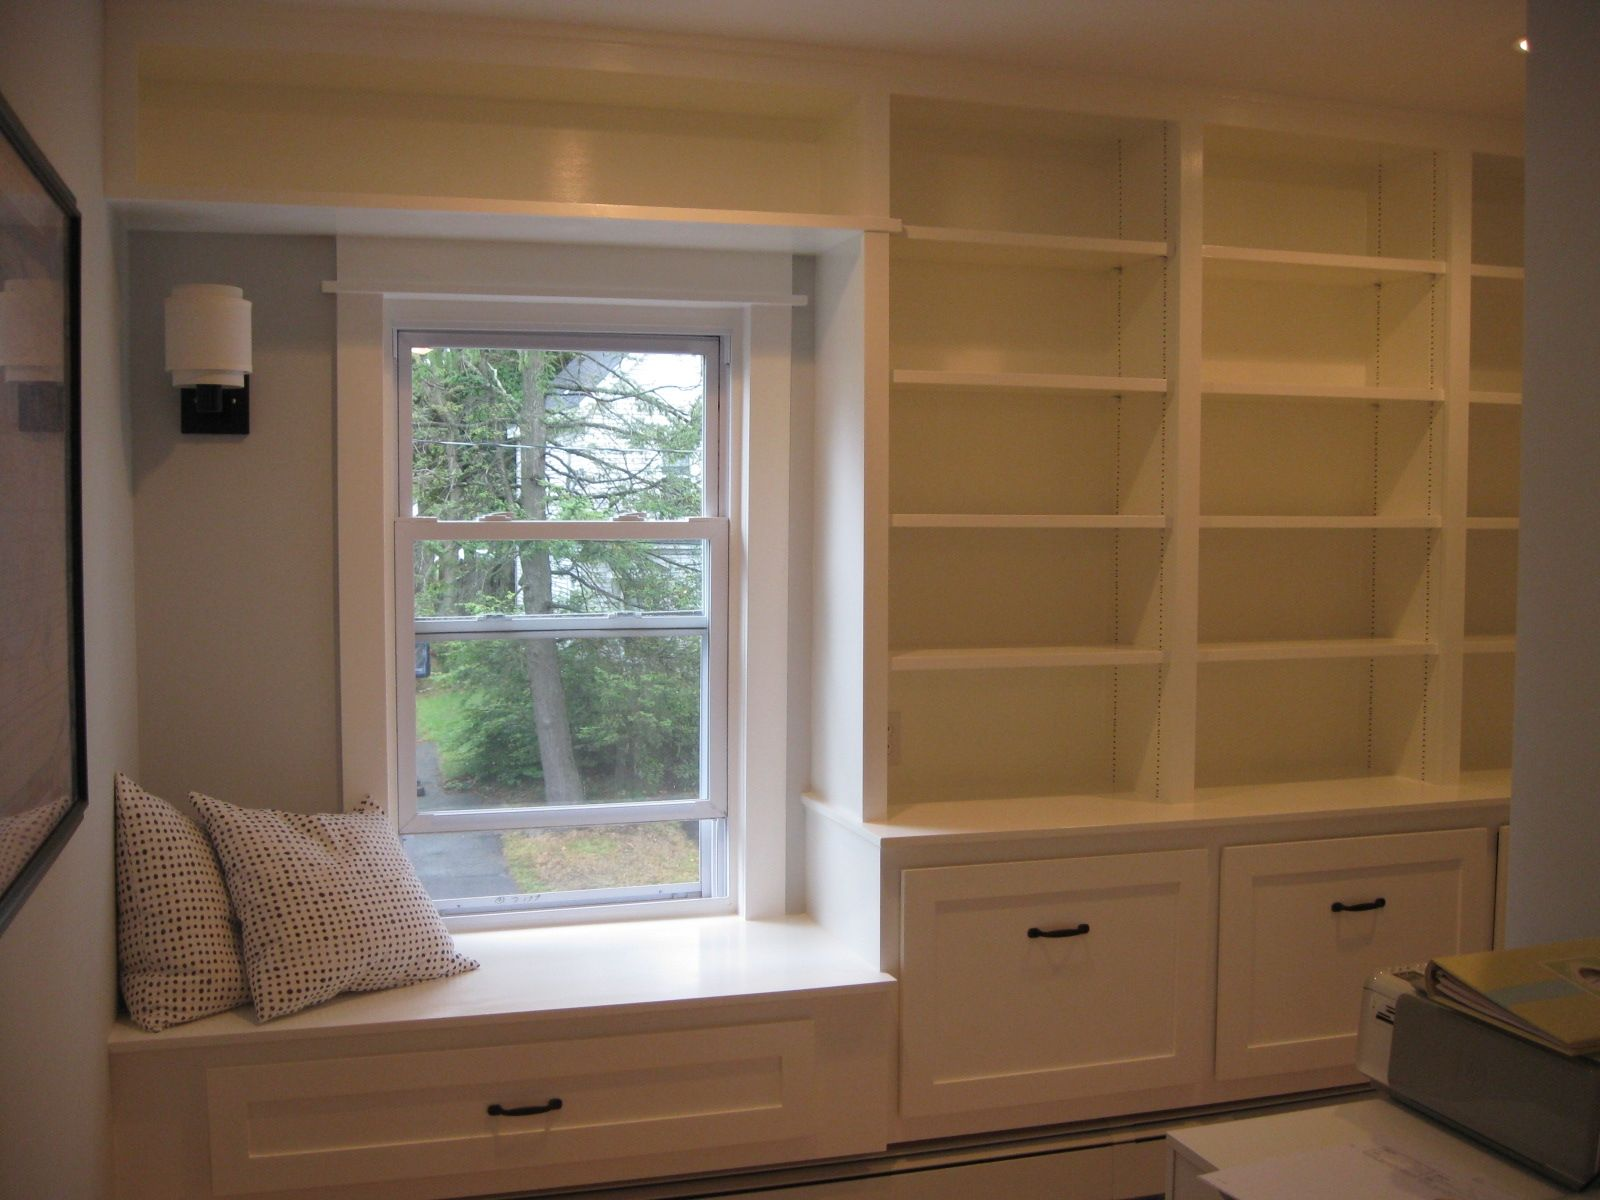 Bay Window Seat Off Center Window Window Seat Design Bookshelves Built In Bedroom Built Ins